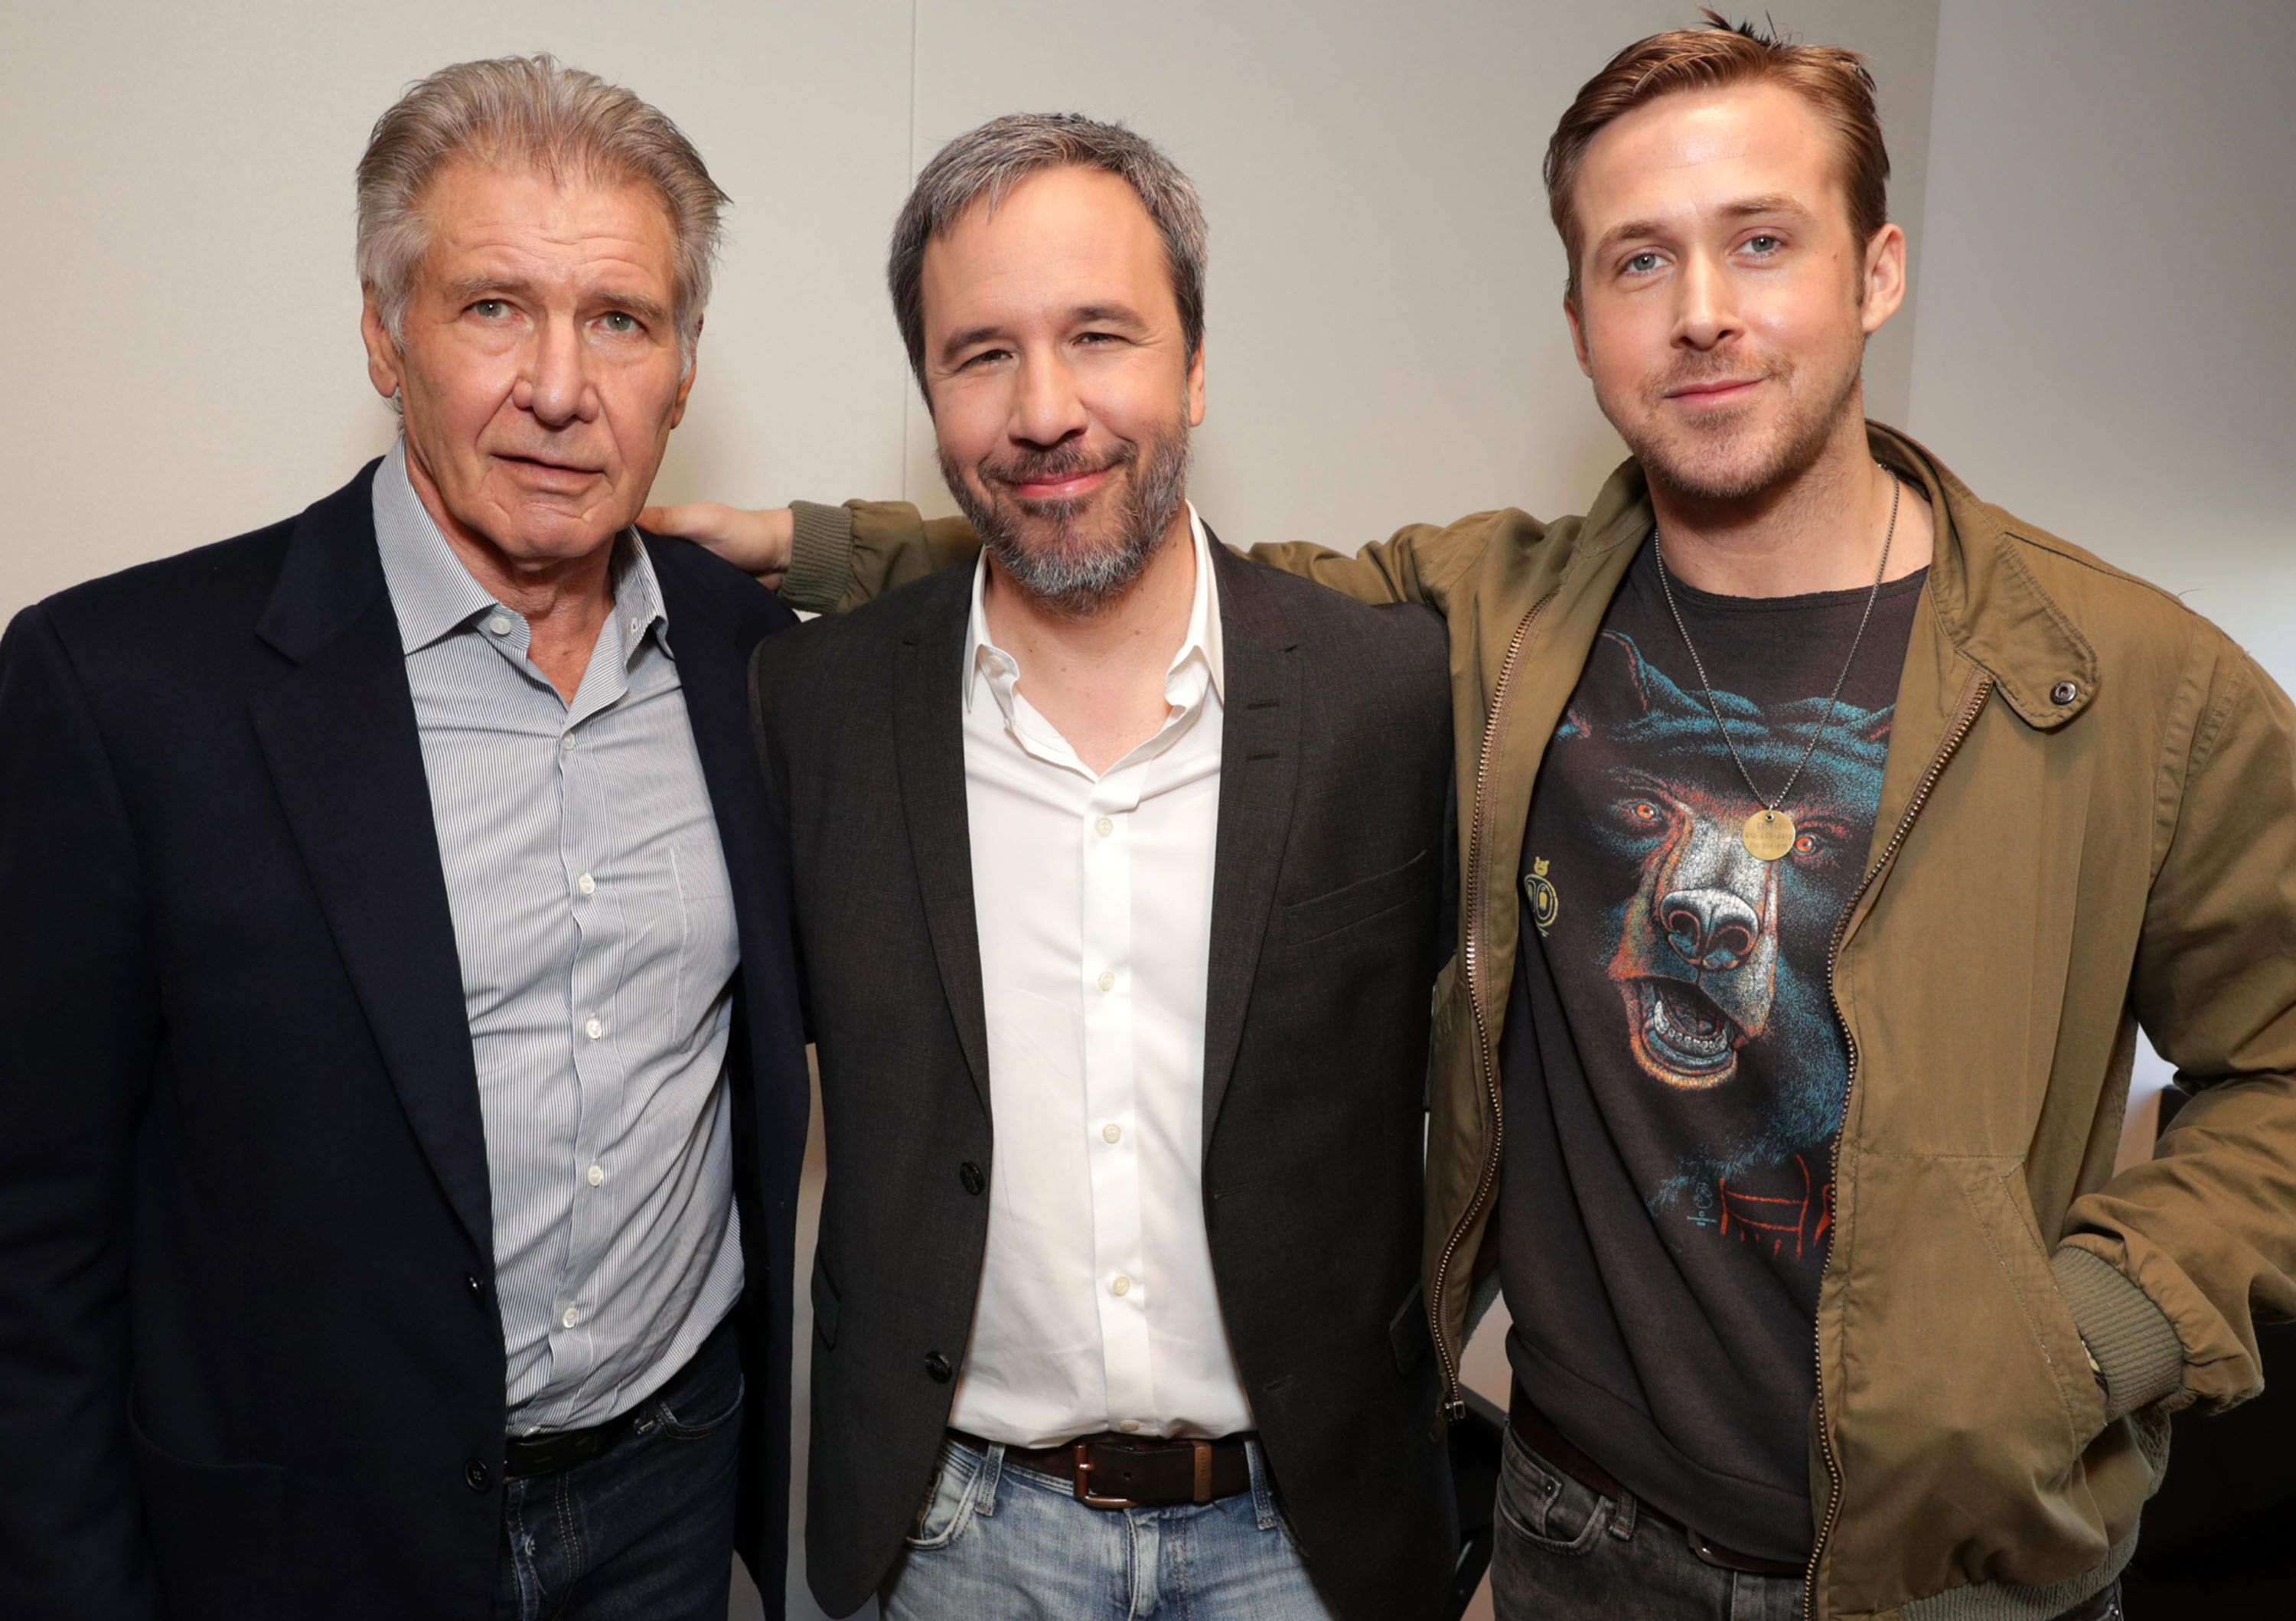 Blade Runner 2049 is smart, stunning sci-fi